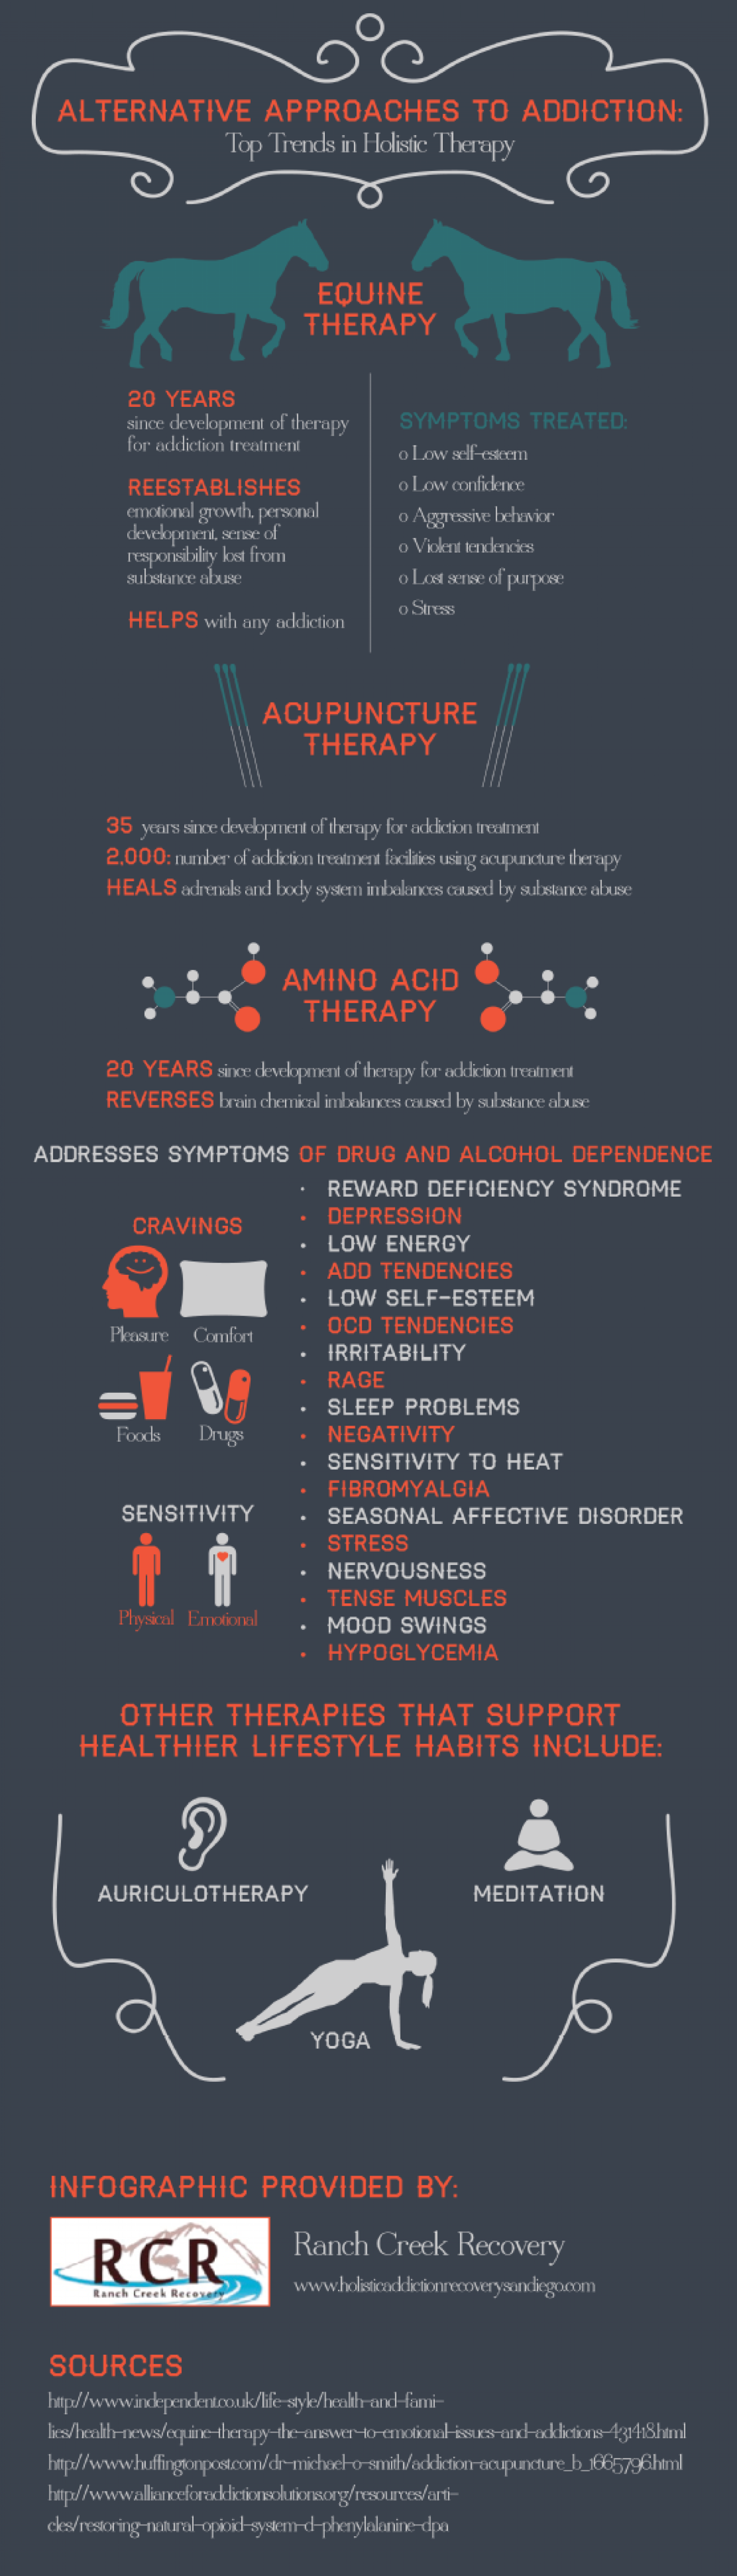 Alternative Approaches to Addiction: Top Trends in Holistic Therapy Infographic